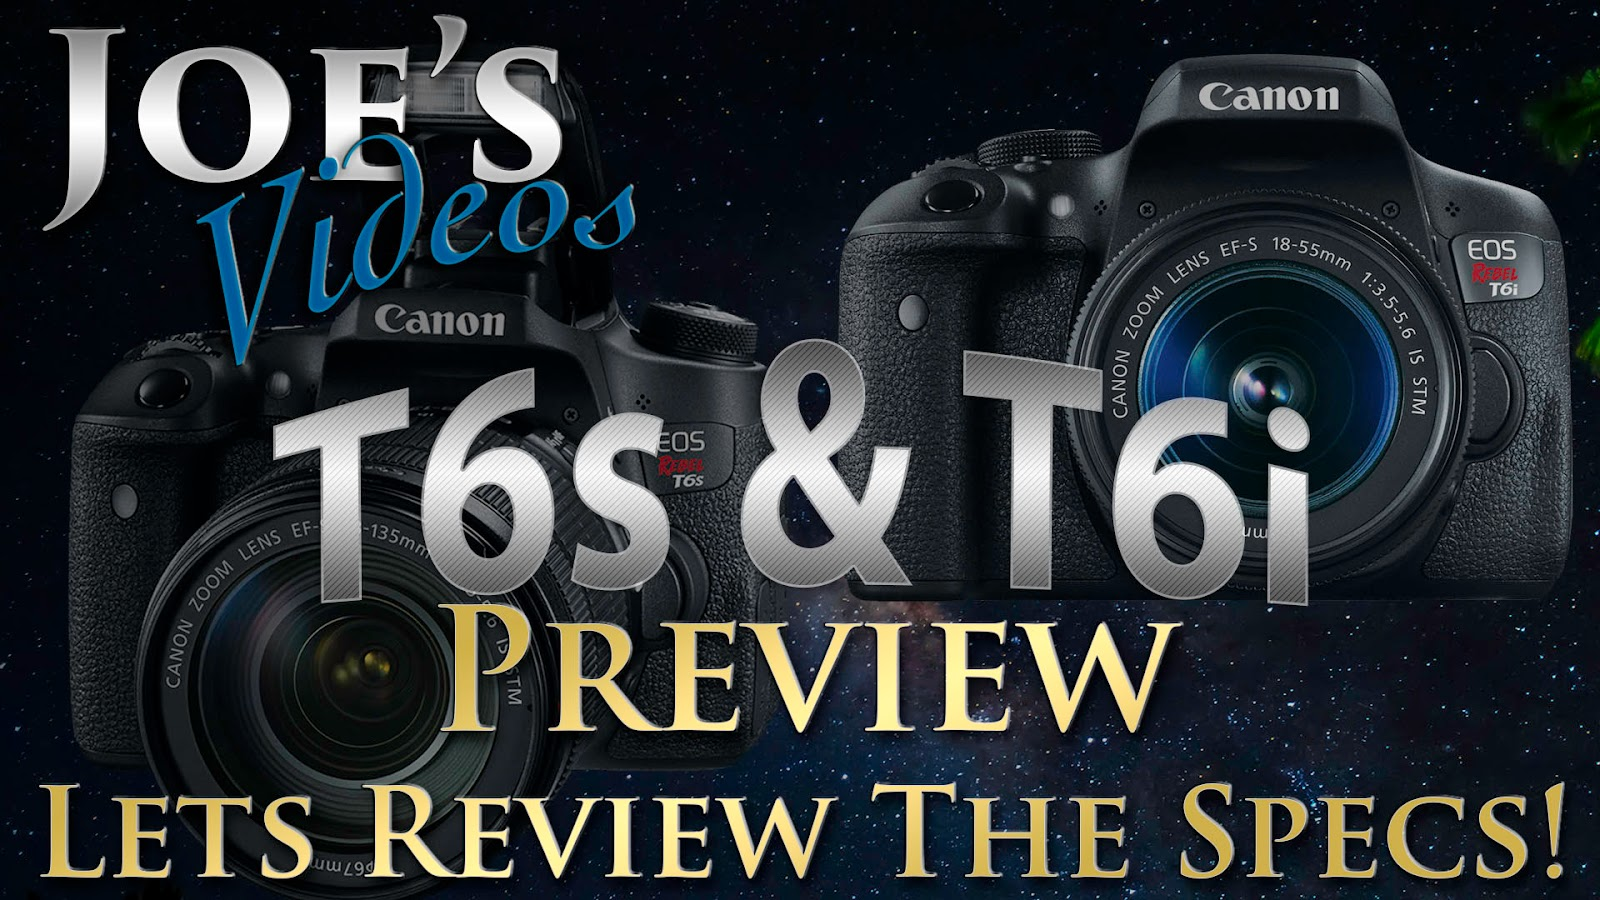 Canon EOS T6i & T6s Digital SLR Preview, Lets Review The Specs | Joe's Videos